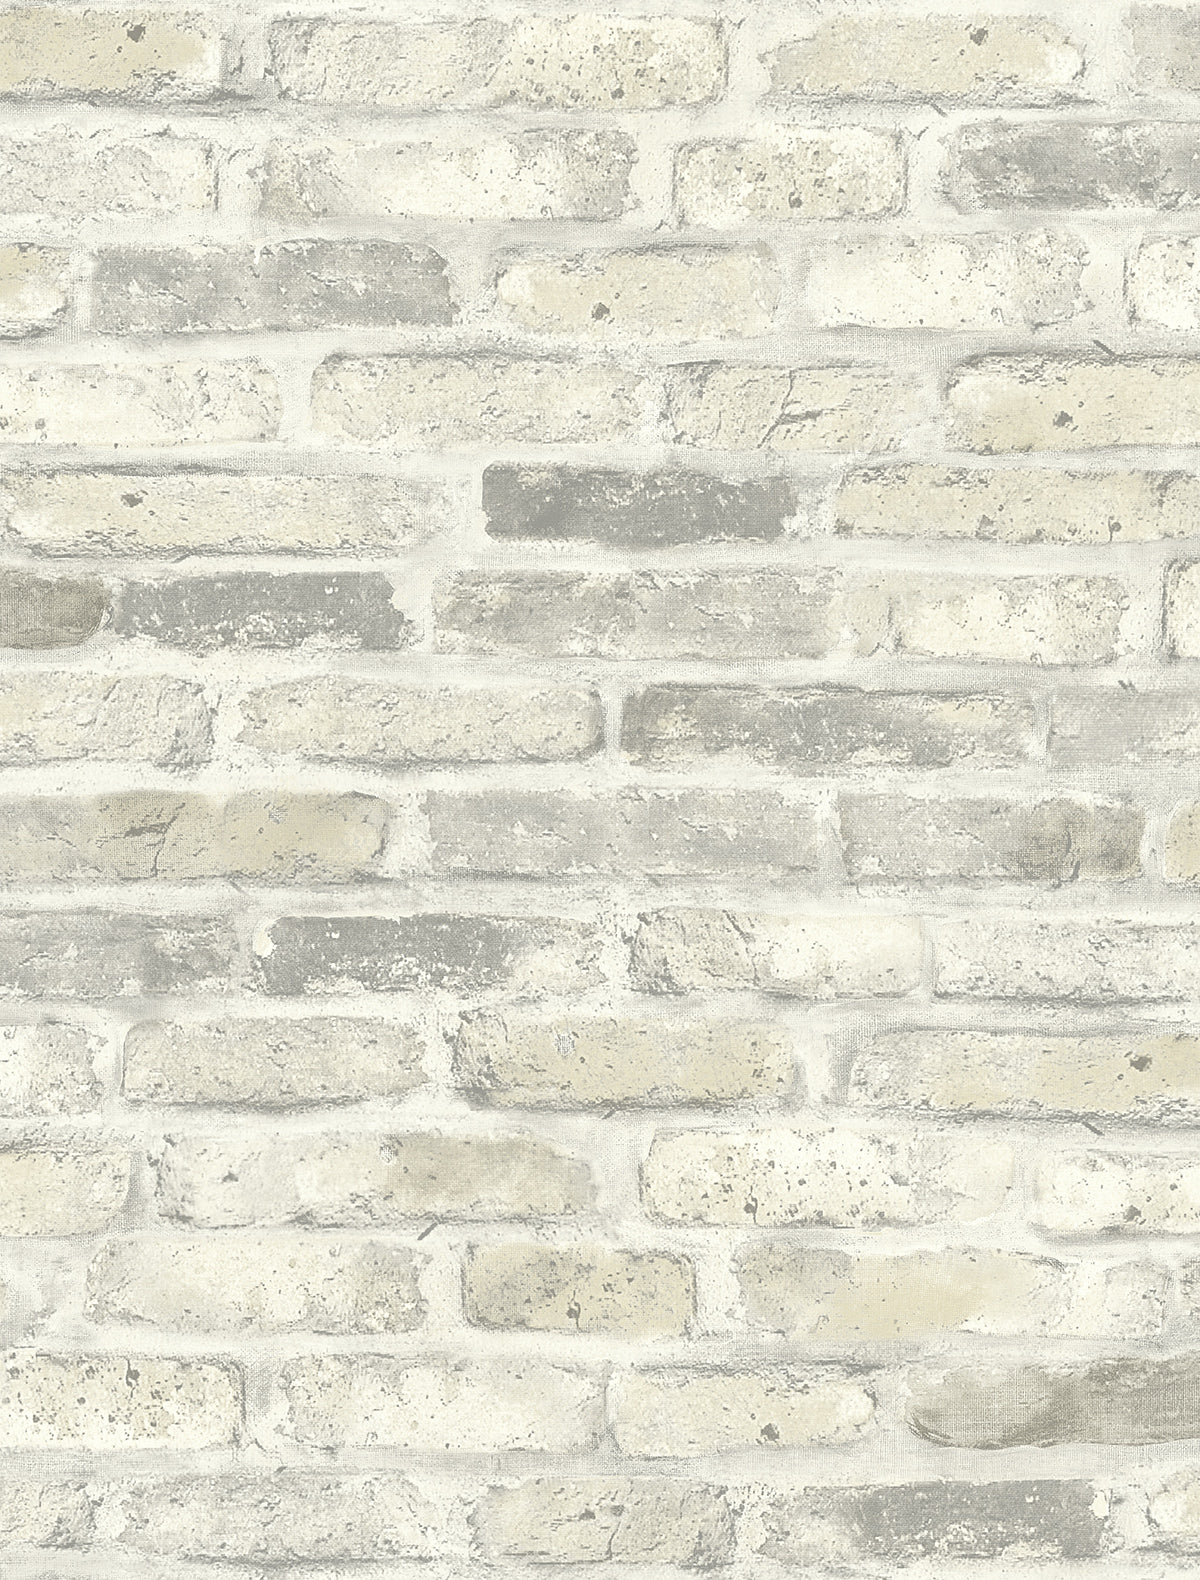 Must see Wallpaper Brick Neutral - Vintage_Brick_Wallpaper_in_Soft_Neutral_from_the_Vintage_Home_2_Collection_by_Wallquest_716fa3a6-1672-4dd0-ad6c-e0d48bfddfdb_2048x2048  Perfect Image Reference_646882.jpg?v\u003d1522689415